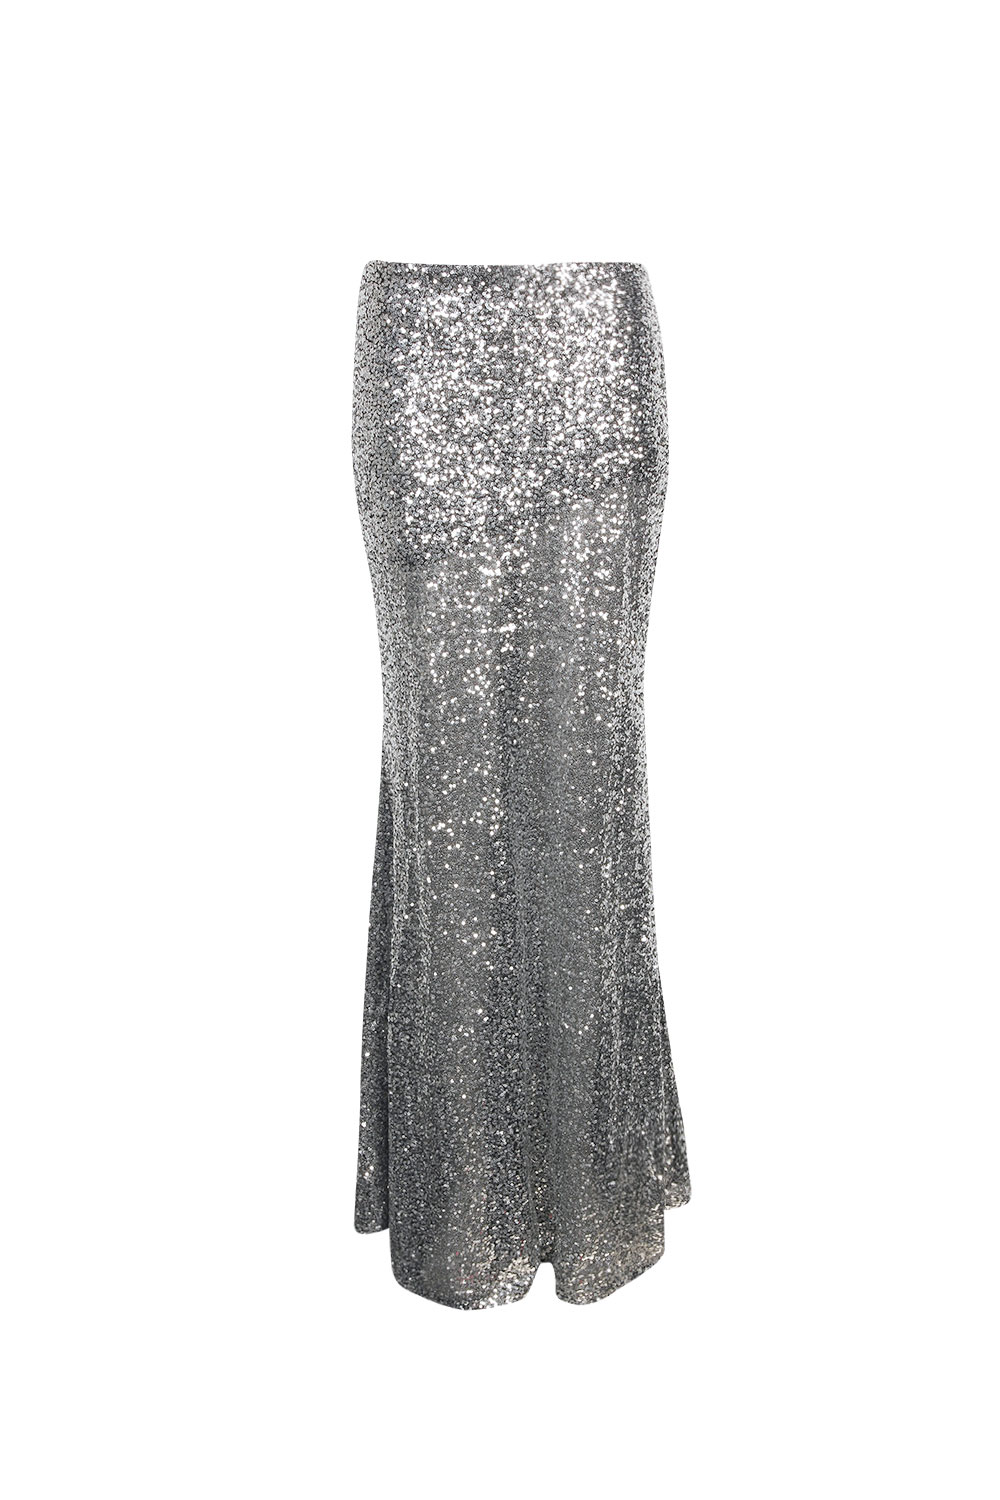 Boohoo Madeline All Over Sequin Maxi Skirt In Silver | eBay